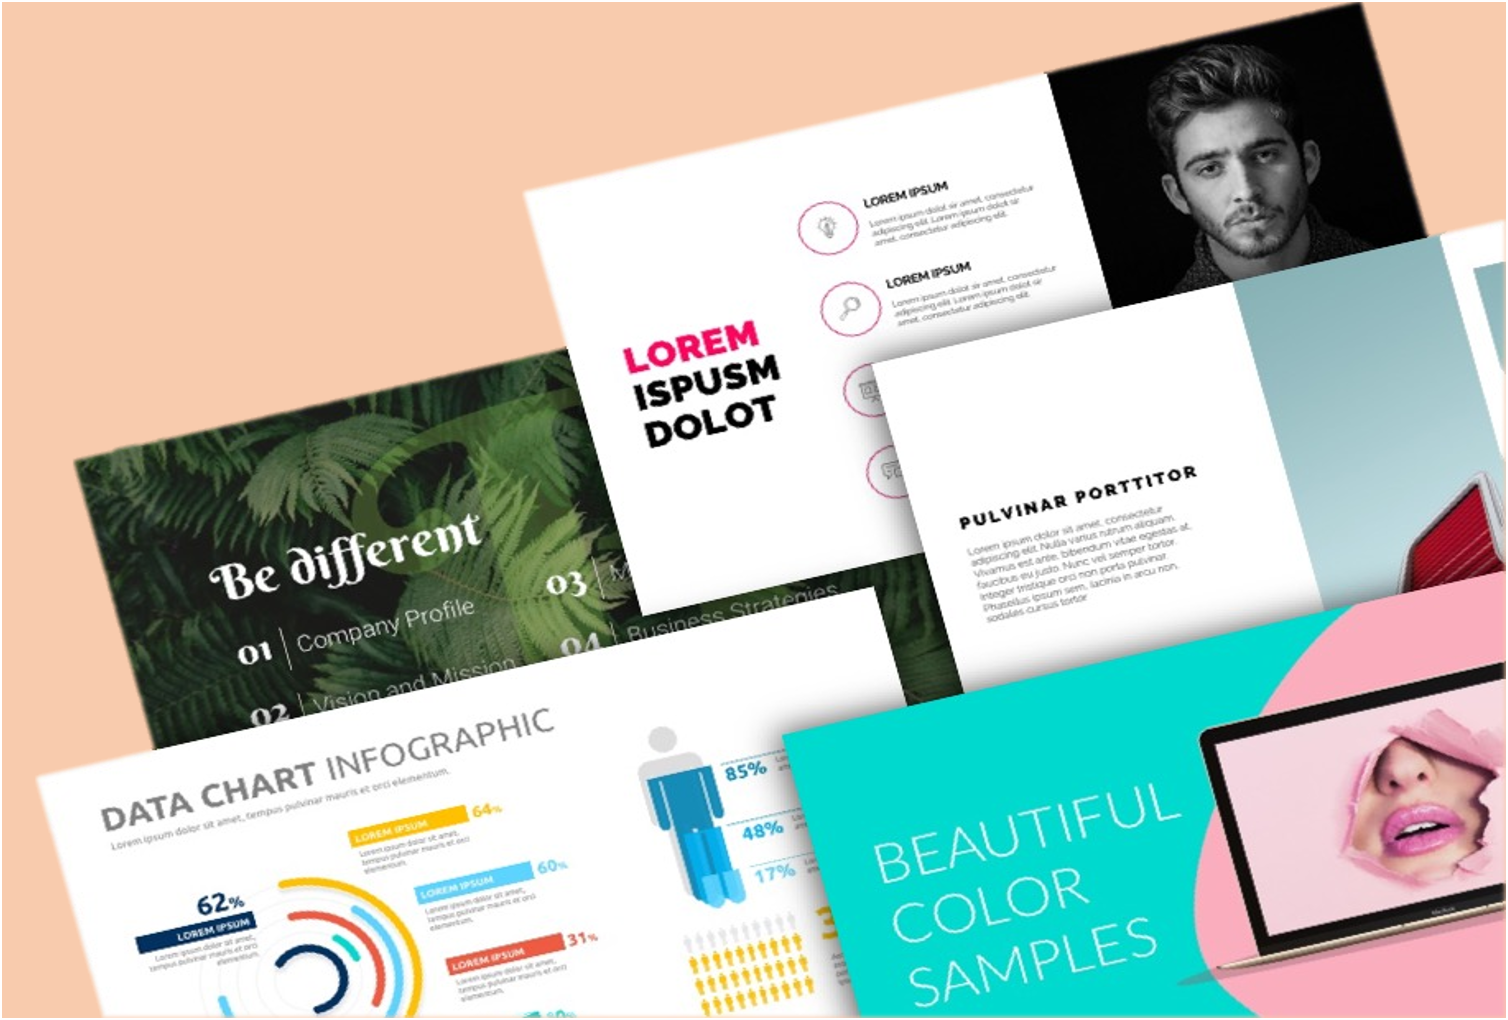 9 Simple Ways To Beautify Your PowerPoint Presentations In 2018 (Design Examples Included)